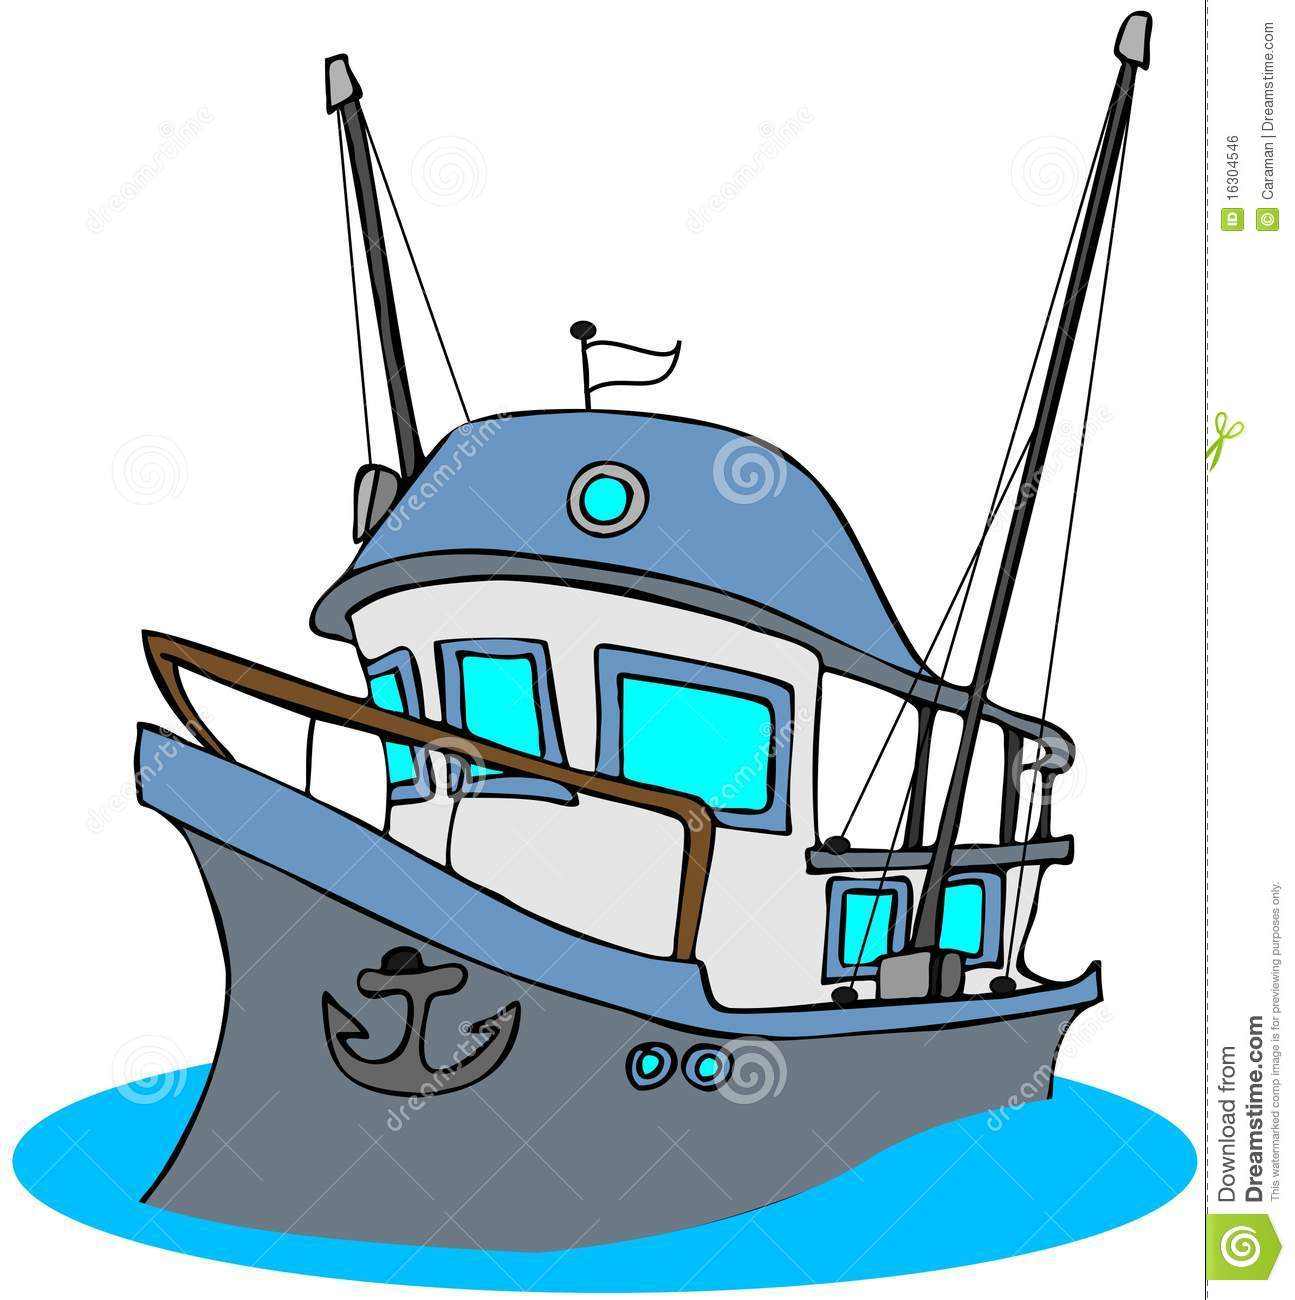 1295x1300 Fishing Clipart Commercial Fishing Boat